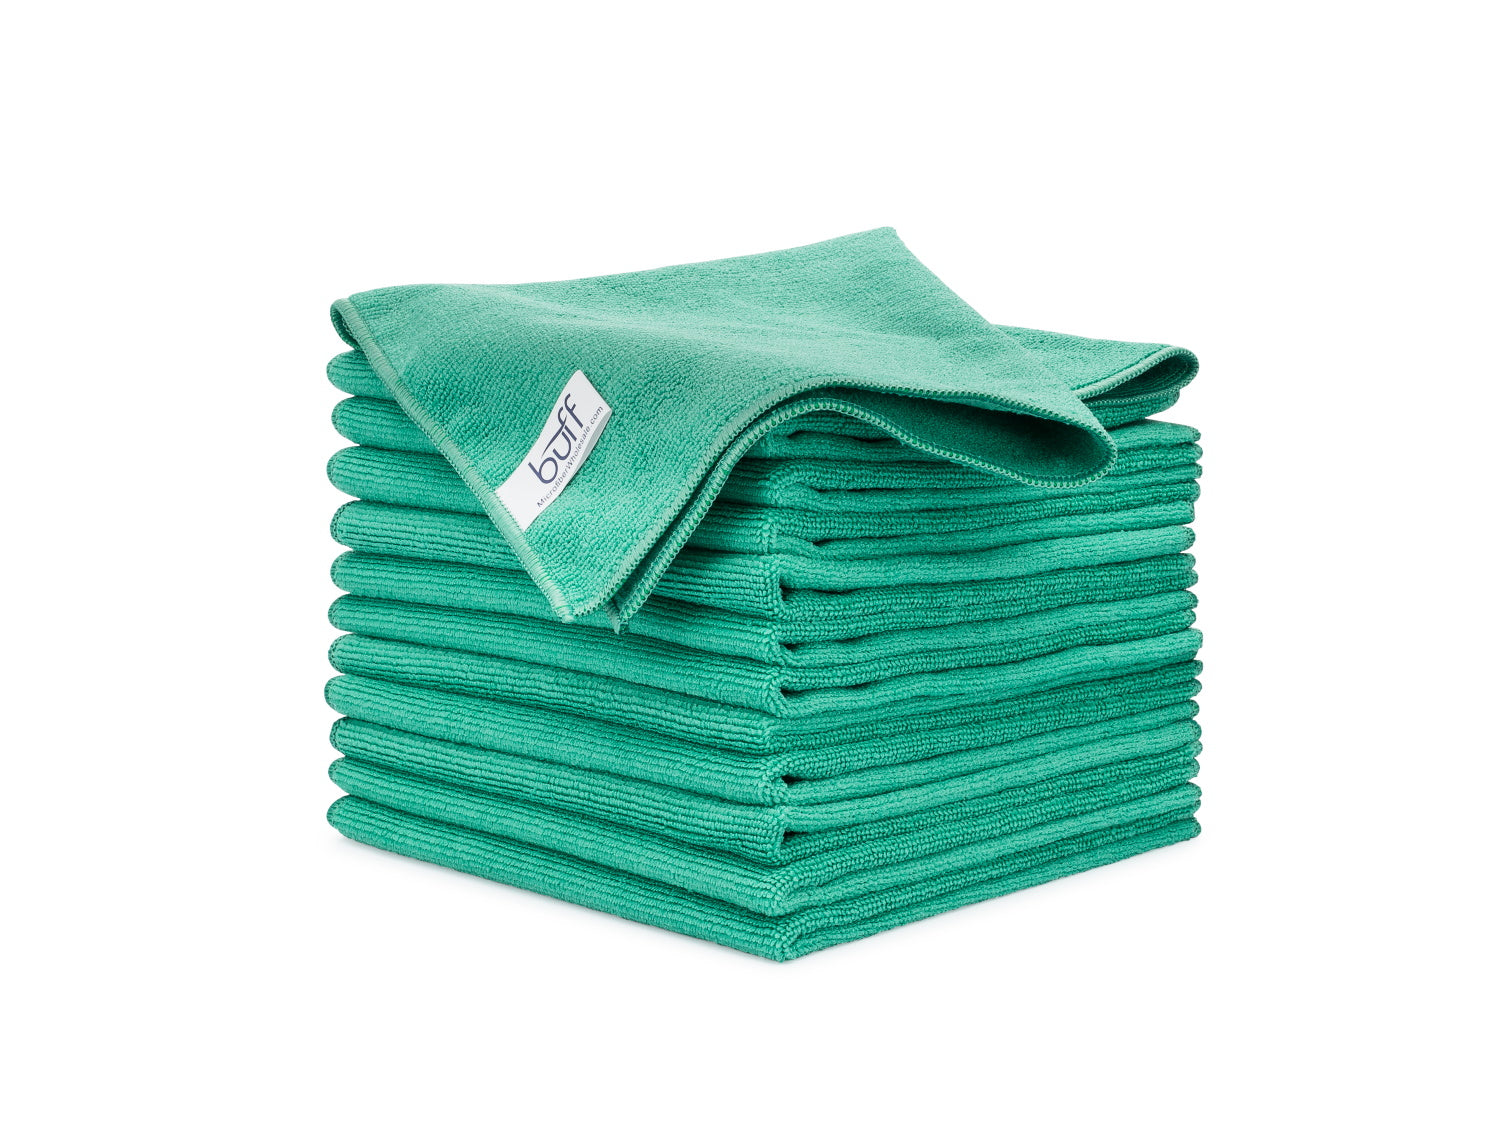 Green Microfiber Towels 12 Pack